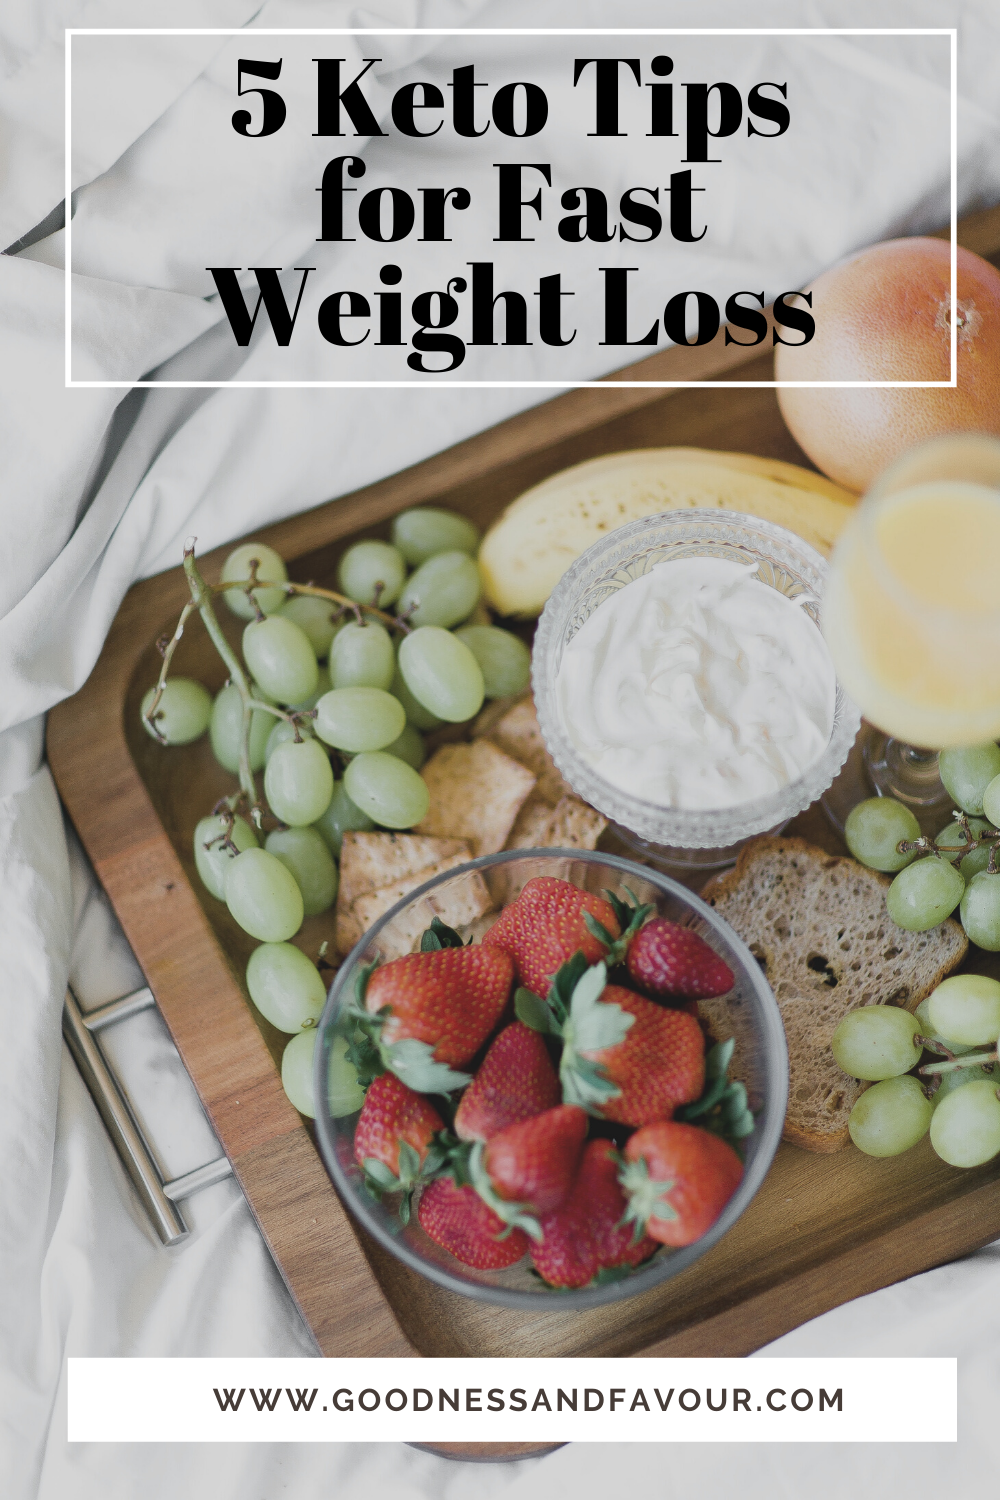 5 Keto Tips for Fast Weight Loss - Goodness and Favour